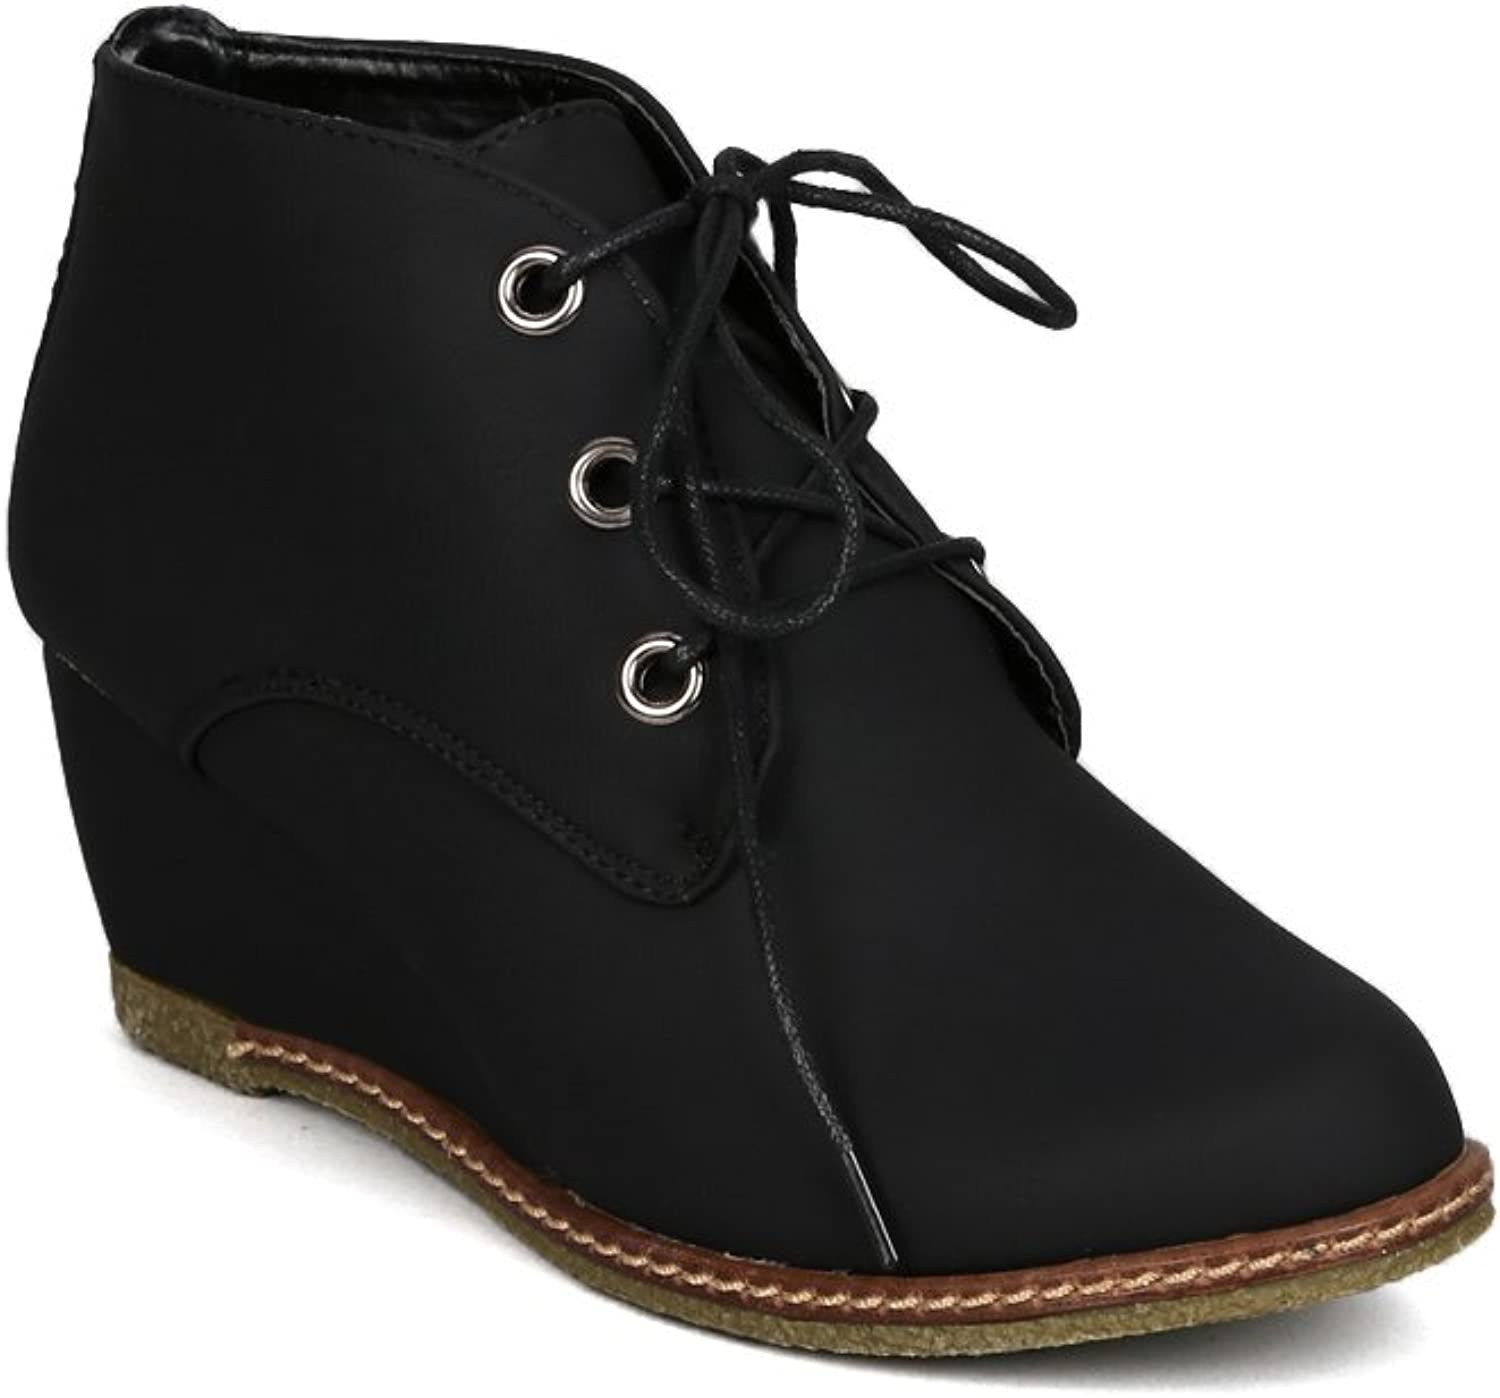 Nature Breeze AB64 Women Stitch Detail Lace up Designers Ankle Bootie Wedge - Black